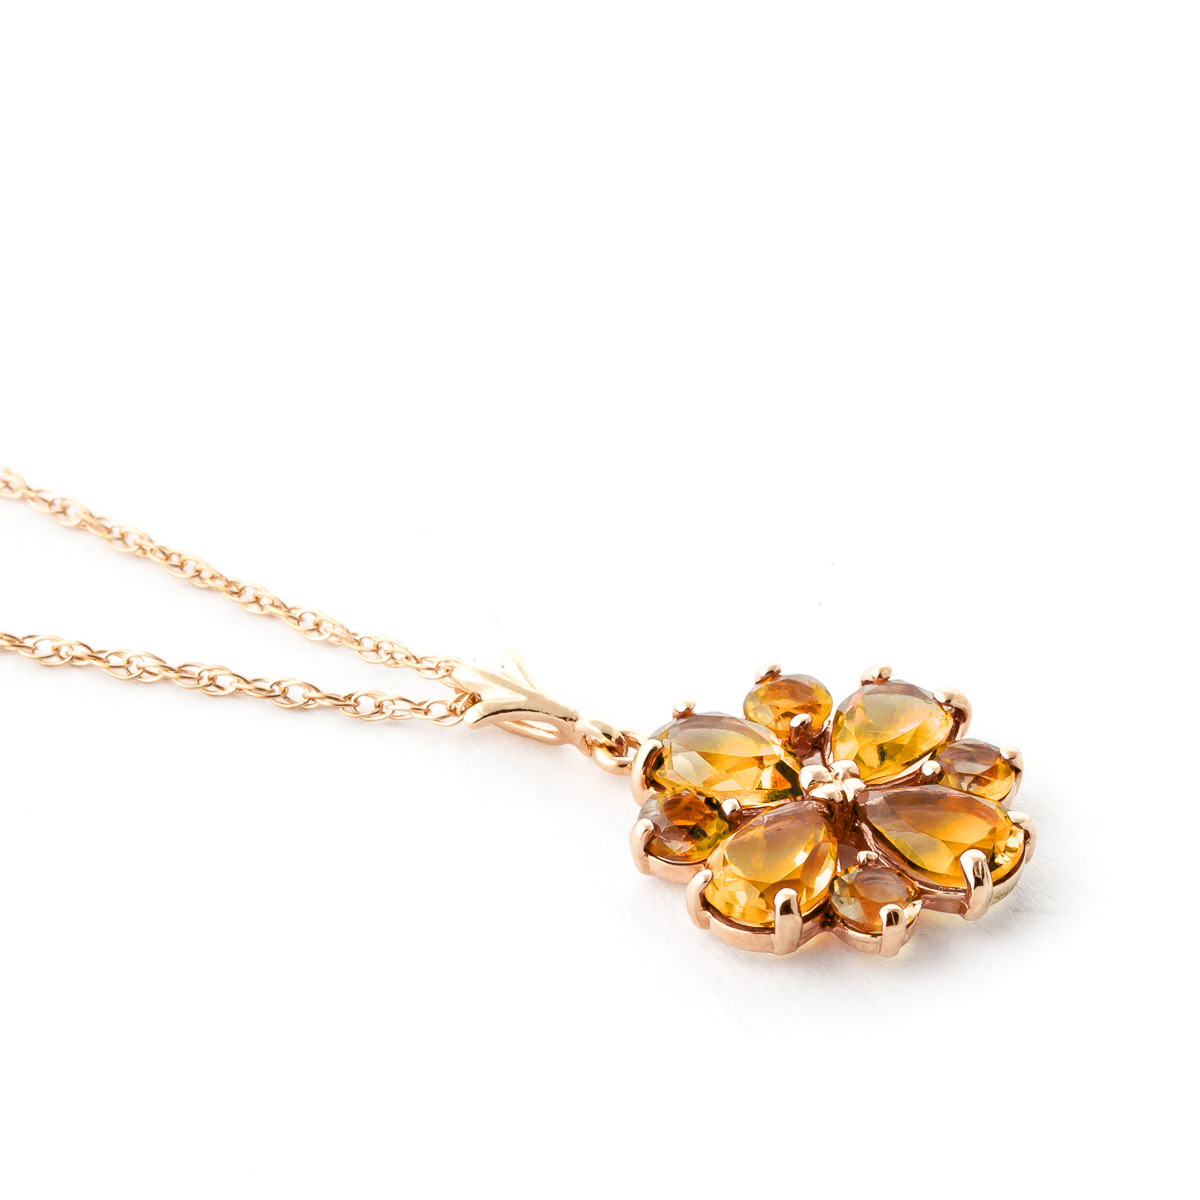 Citrine Sunflower Pendant Necklace 2.43ctw in 14K Rose Gold